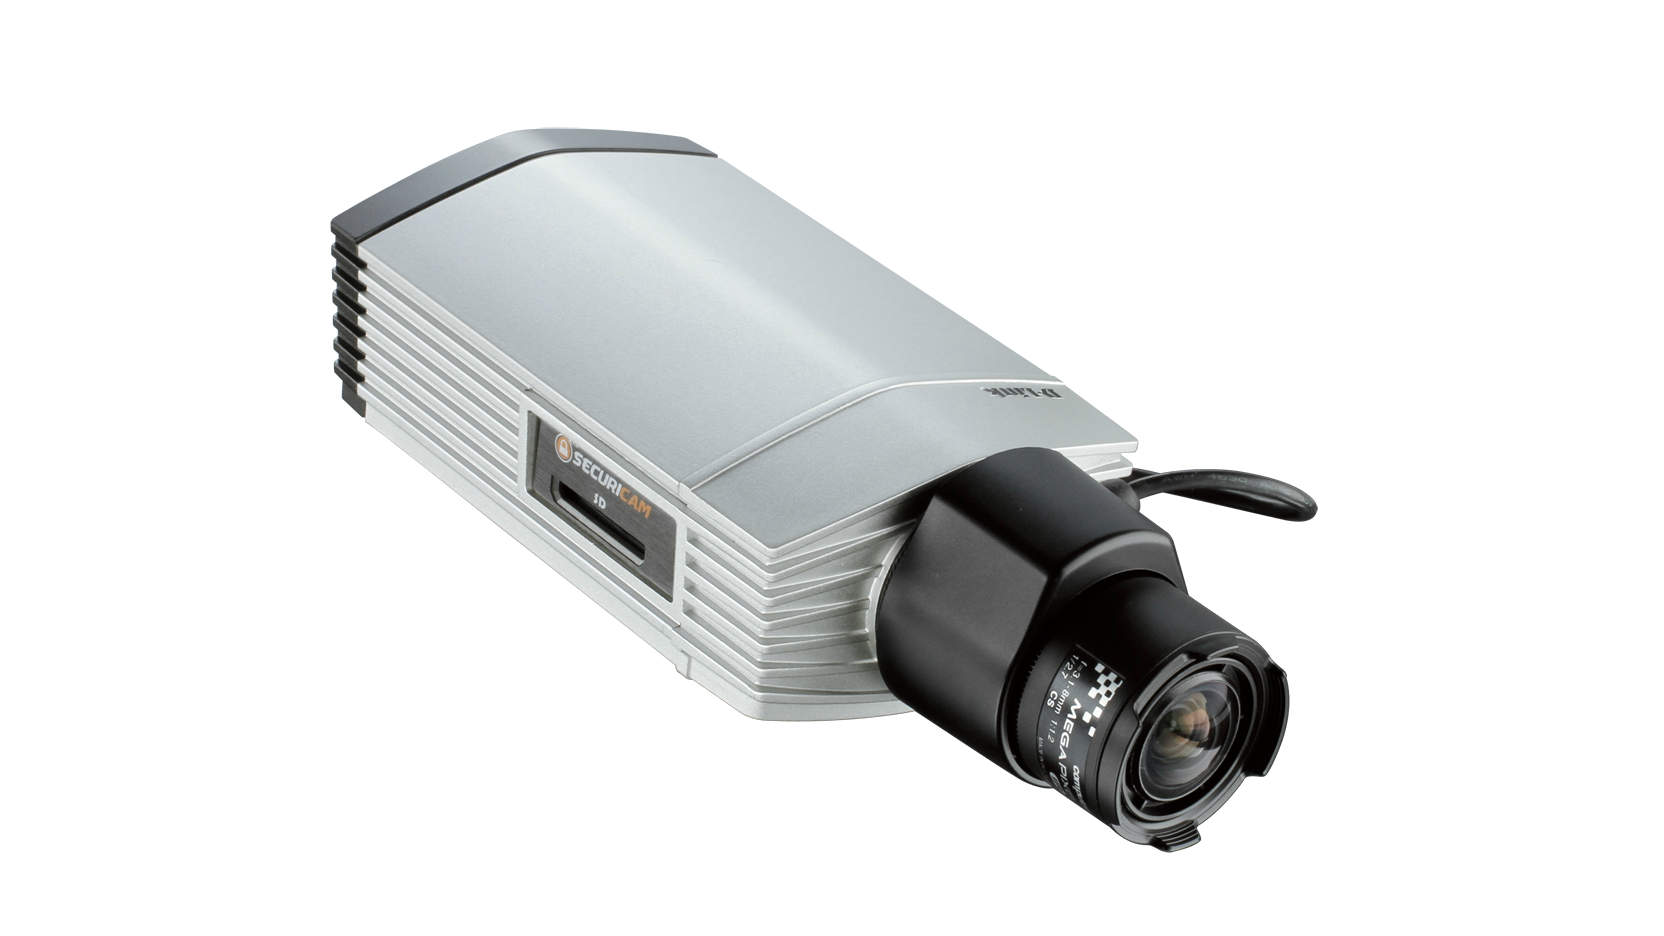 D-Link DCS-3716 IP Camera Drivers PC